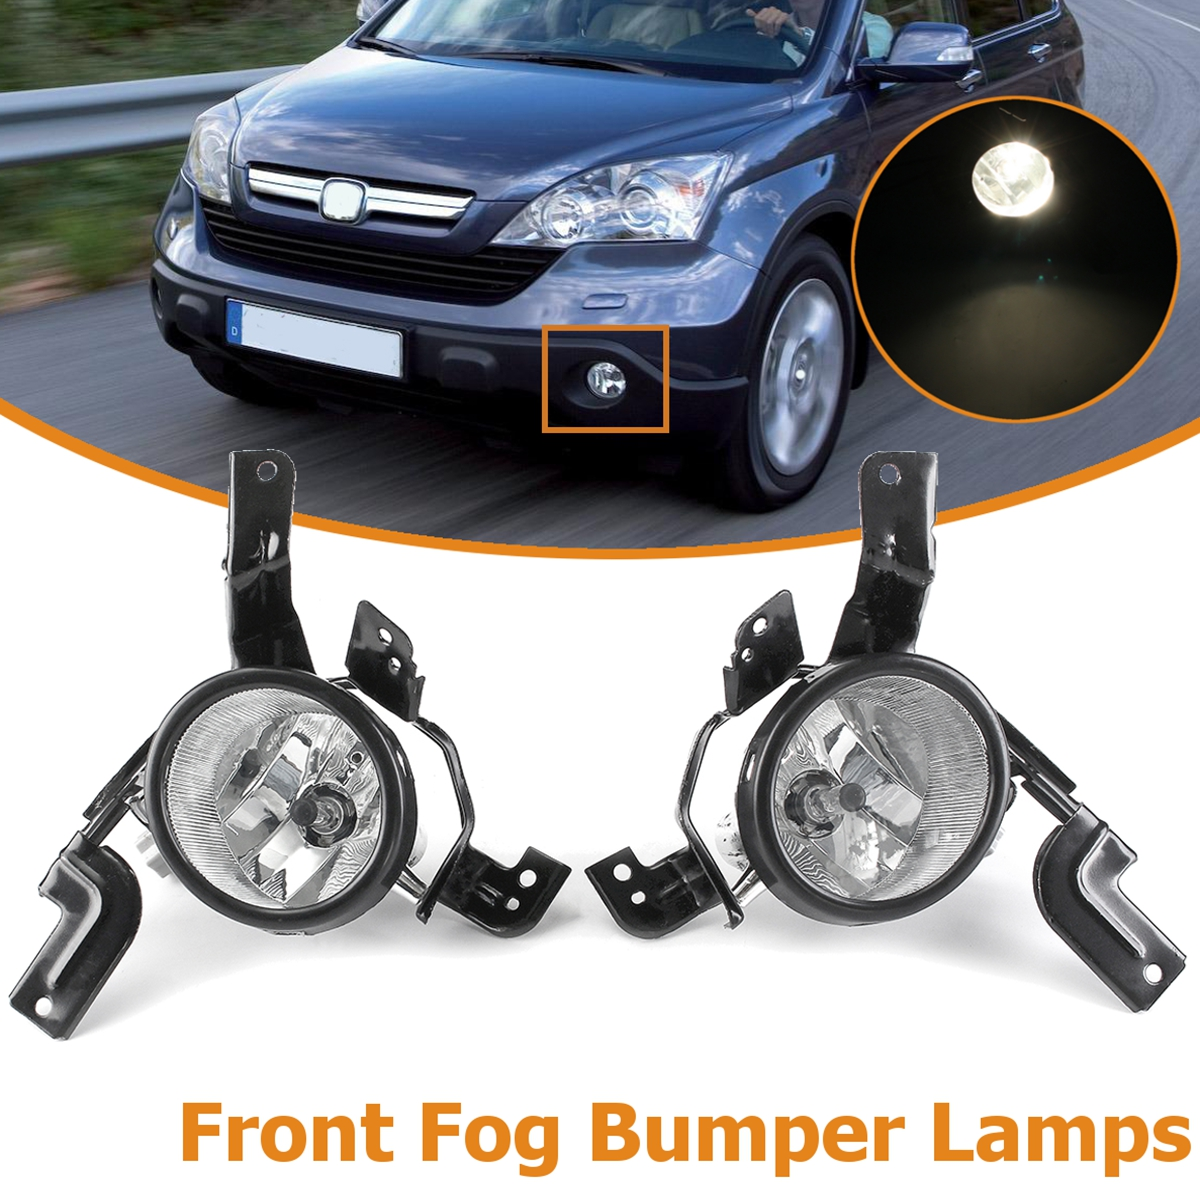 FOR HONDA CRV 2007 2008 2009 RE1 RE2 RE4 33951-SWA-H01 33901-SWA-H01 1Pair Glass Front fog lamp bumper Lights foglight front bumper foglight decoration strip 2 pcs